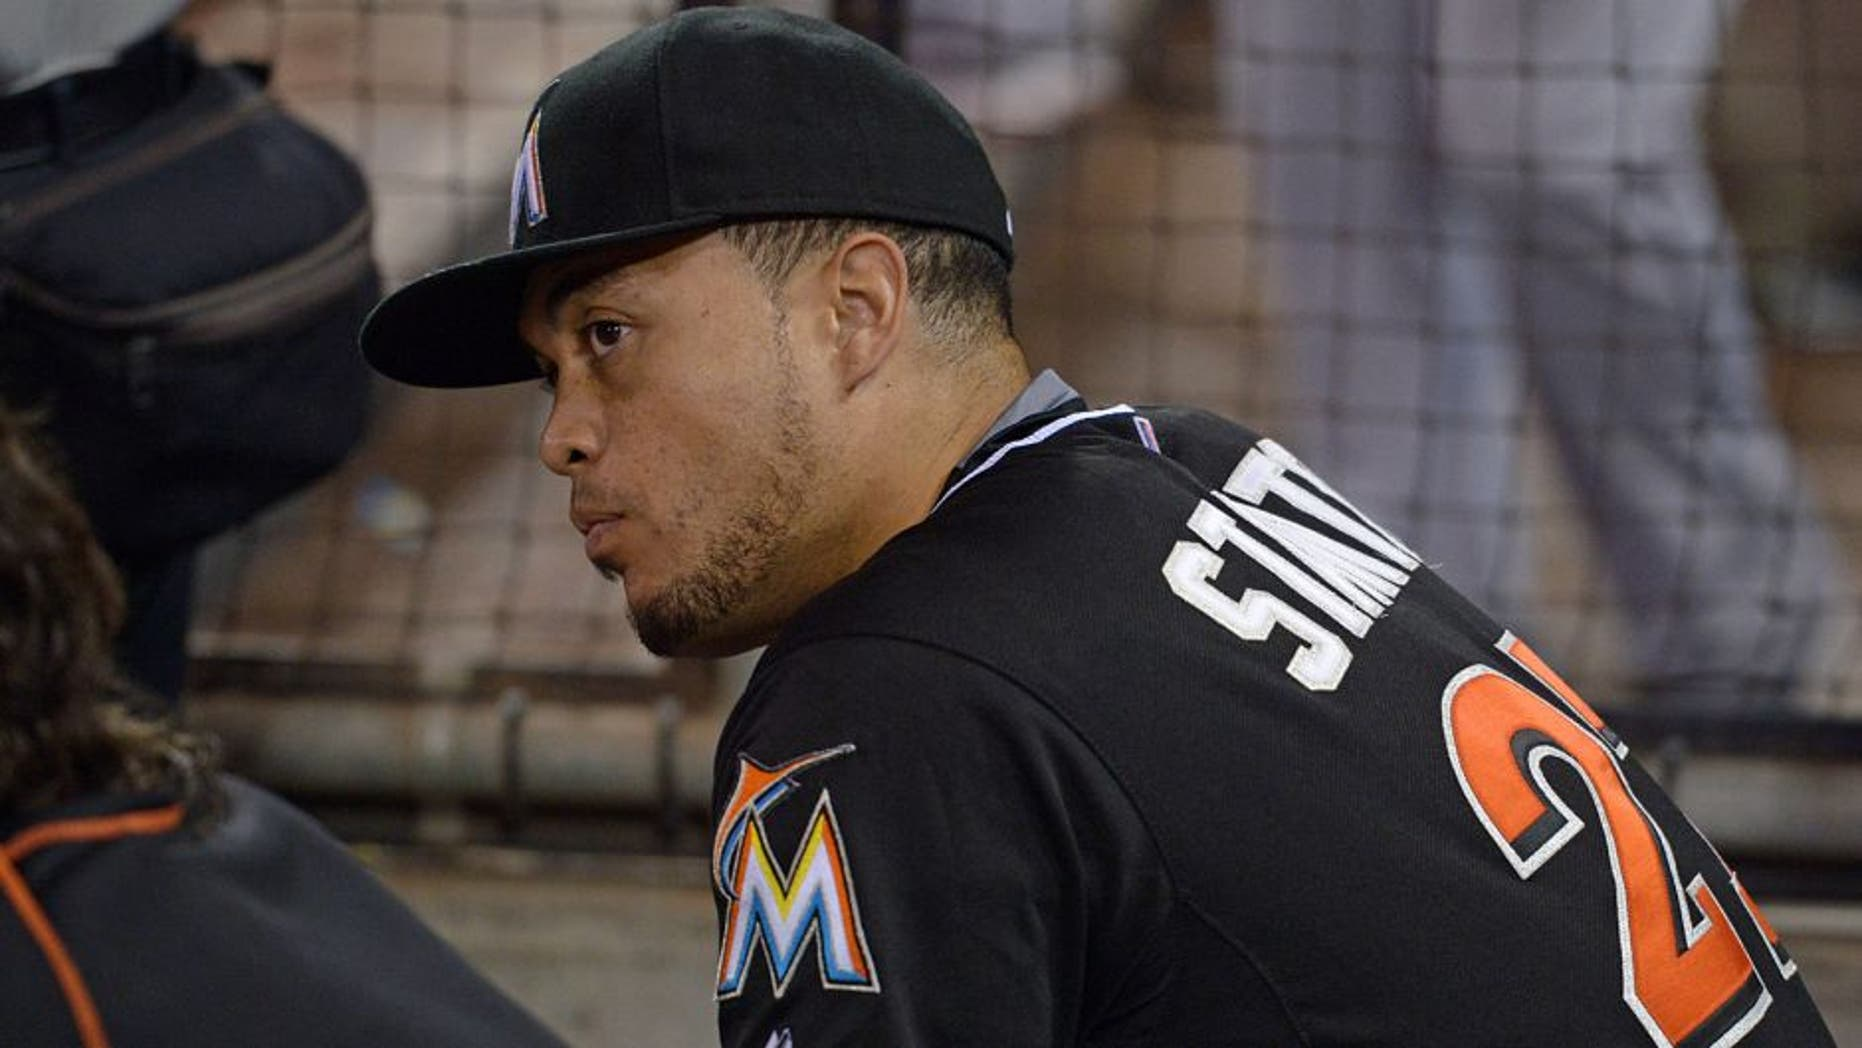 Jul 25, 2015; San Diego, CA, USA; Miami Marlins right fielder Giancarlo Stanton (27) watches game action during the ninth inning against the San Diego Padres at Petco Park. Mandatory Credit: Jake Roth-USA TODAY Sports